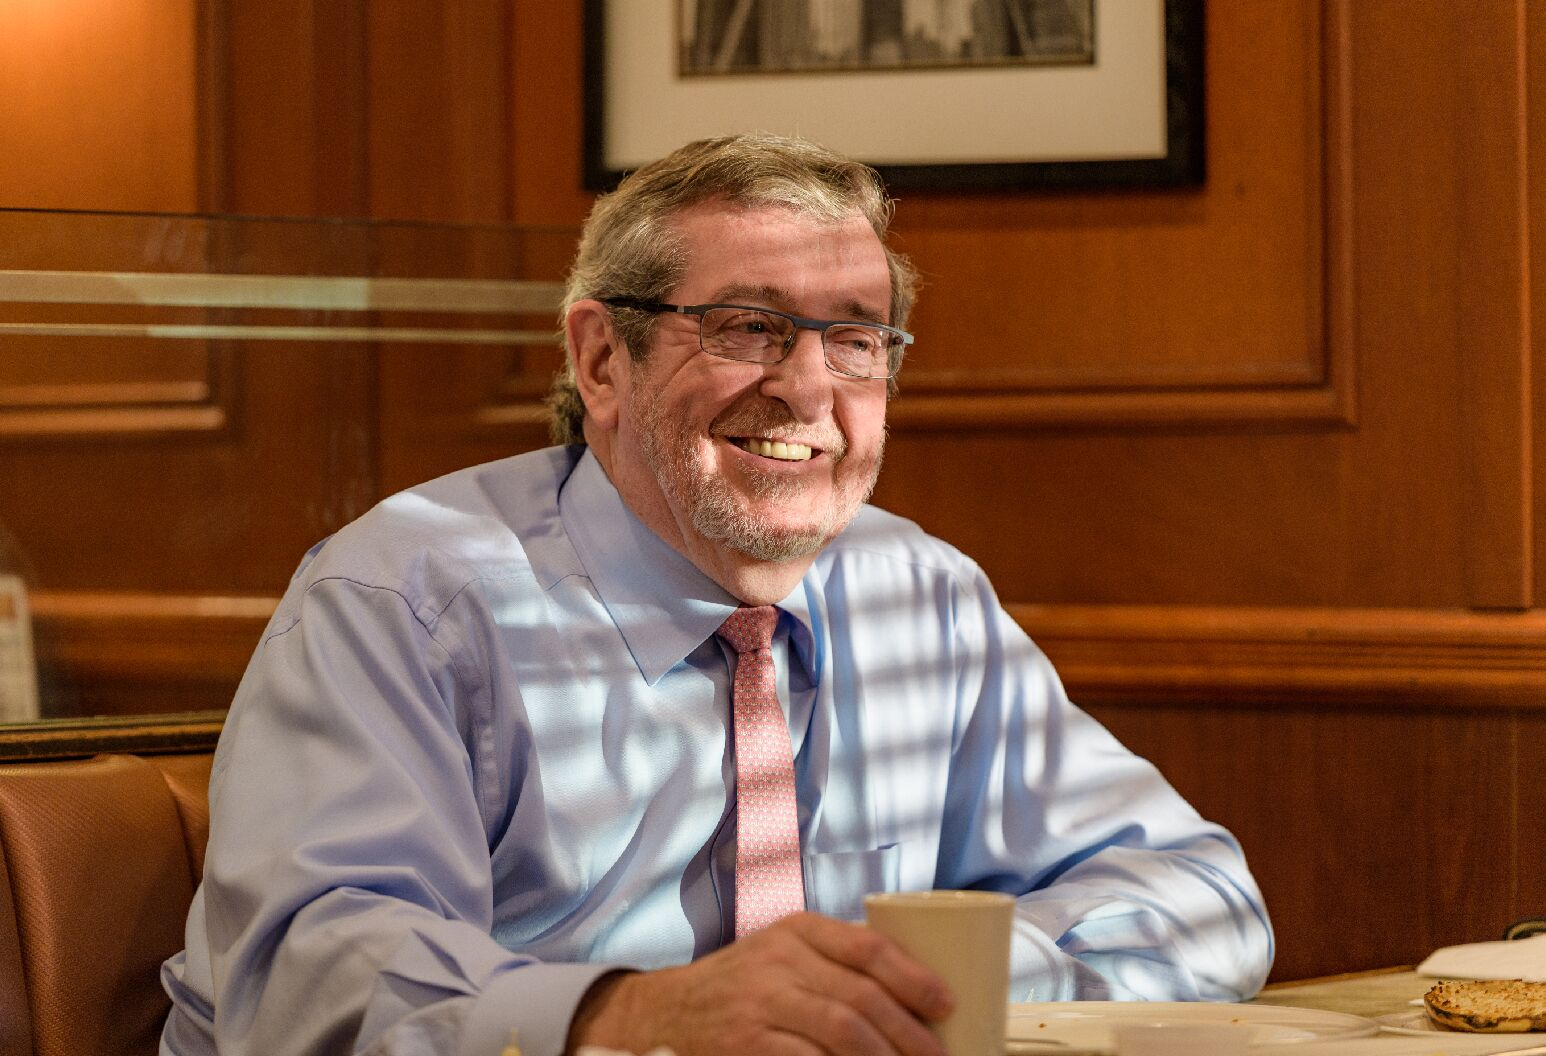 Michael Dowling smiling as he sits at his desk.